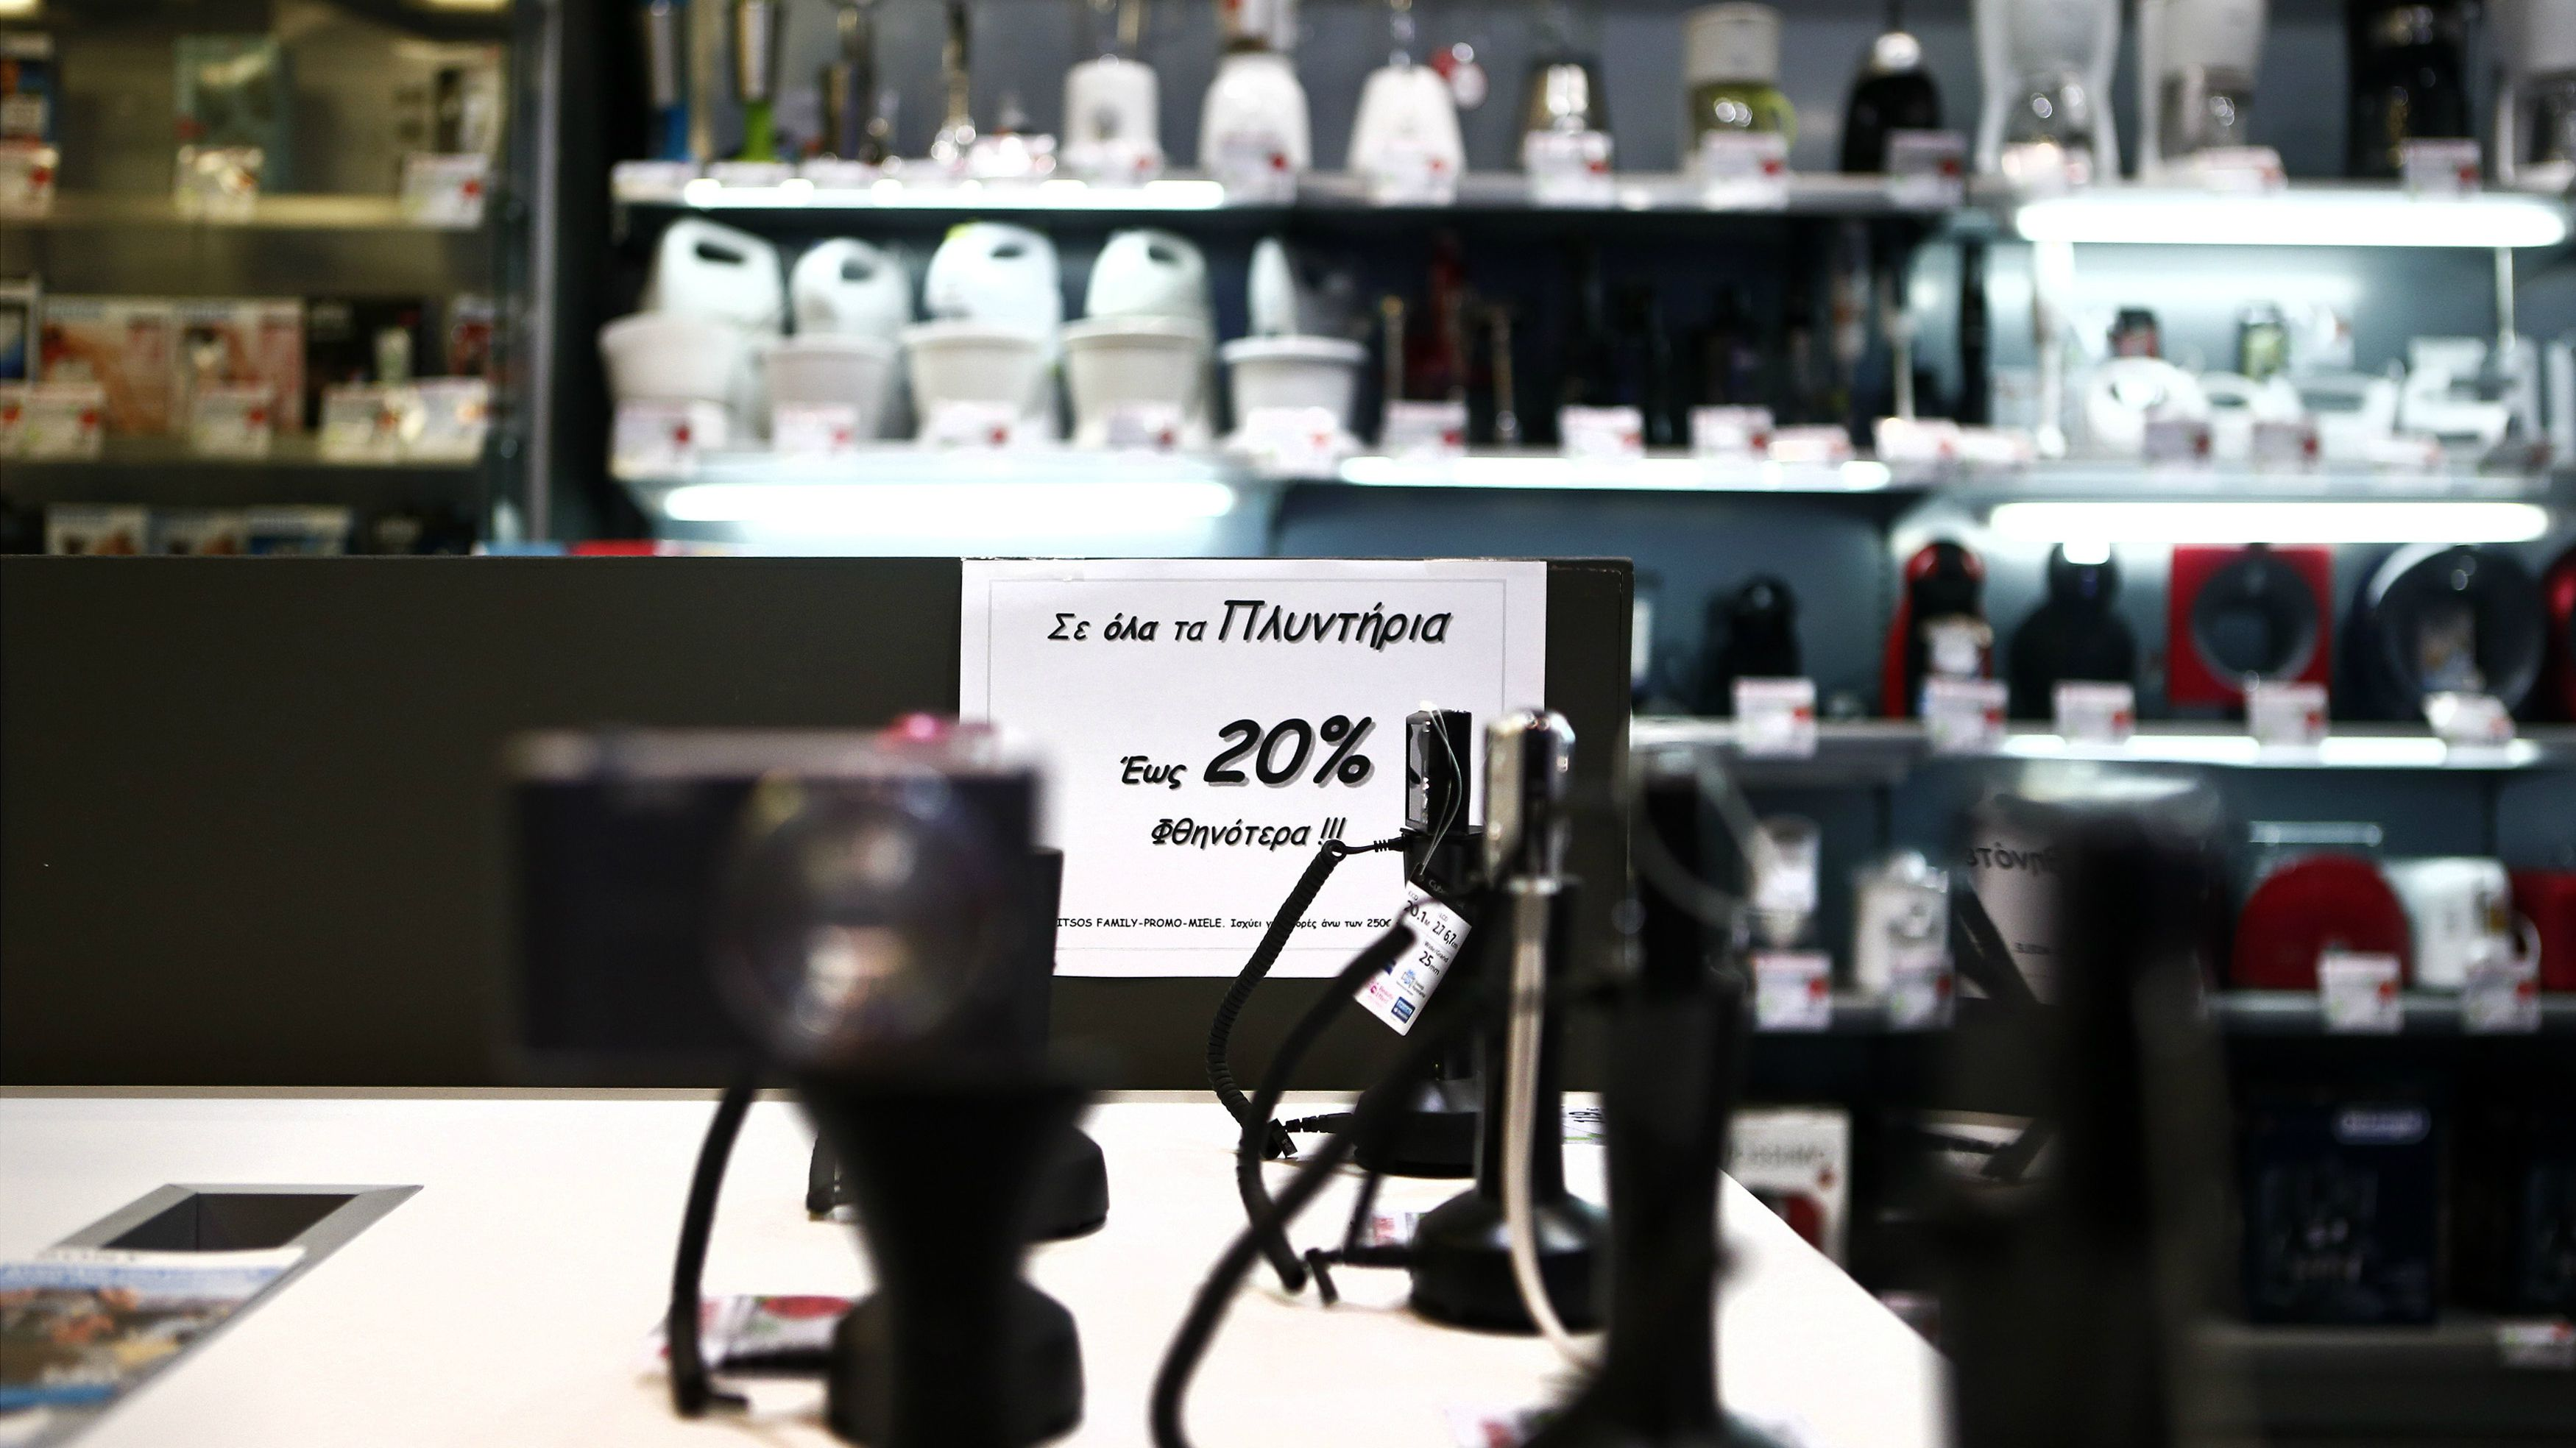 """A sign announcing a discount is pictured at an Electroniki retail chain shop in Athens November 27, 2014. Greece has muddled through 20 consecutive months of deflation, or continuously falling consumer prices ? a phenomenon that economists say could soon infect the whole euro zone. In October, prices fell 1.7 percent from a year earlier. Yet alarm over low inflation in other parts of southern Europe does not echo in Greece. Economists say prices in Greece were unreasonably high for a long time. Between 1995 and 2010, consumer prices rose 17 percent more in Greece than in the euro area overall. Lower prices have since made Greek products more attractive. The sign reads """" 20 percent discount to all washing machines"""". Picture taken November 27, 2014. REUTERS/Alkis Konstantinidis (GREECE - Tags: BUSINESS POLITICS)"""